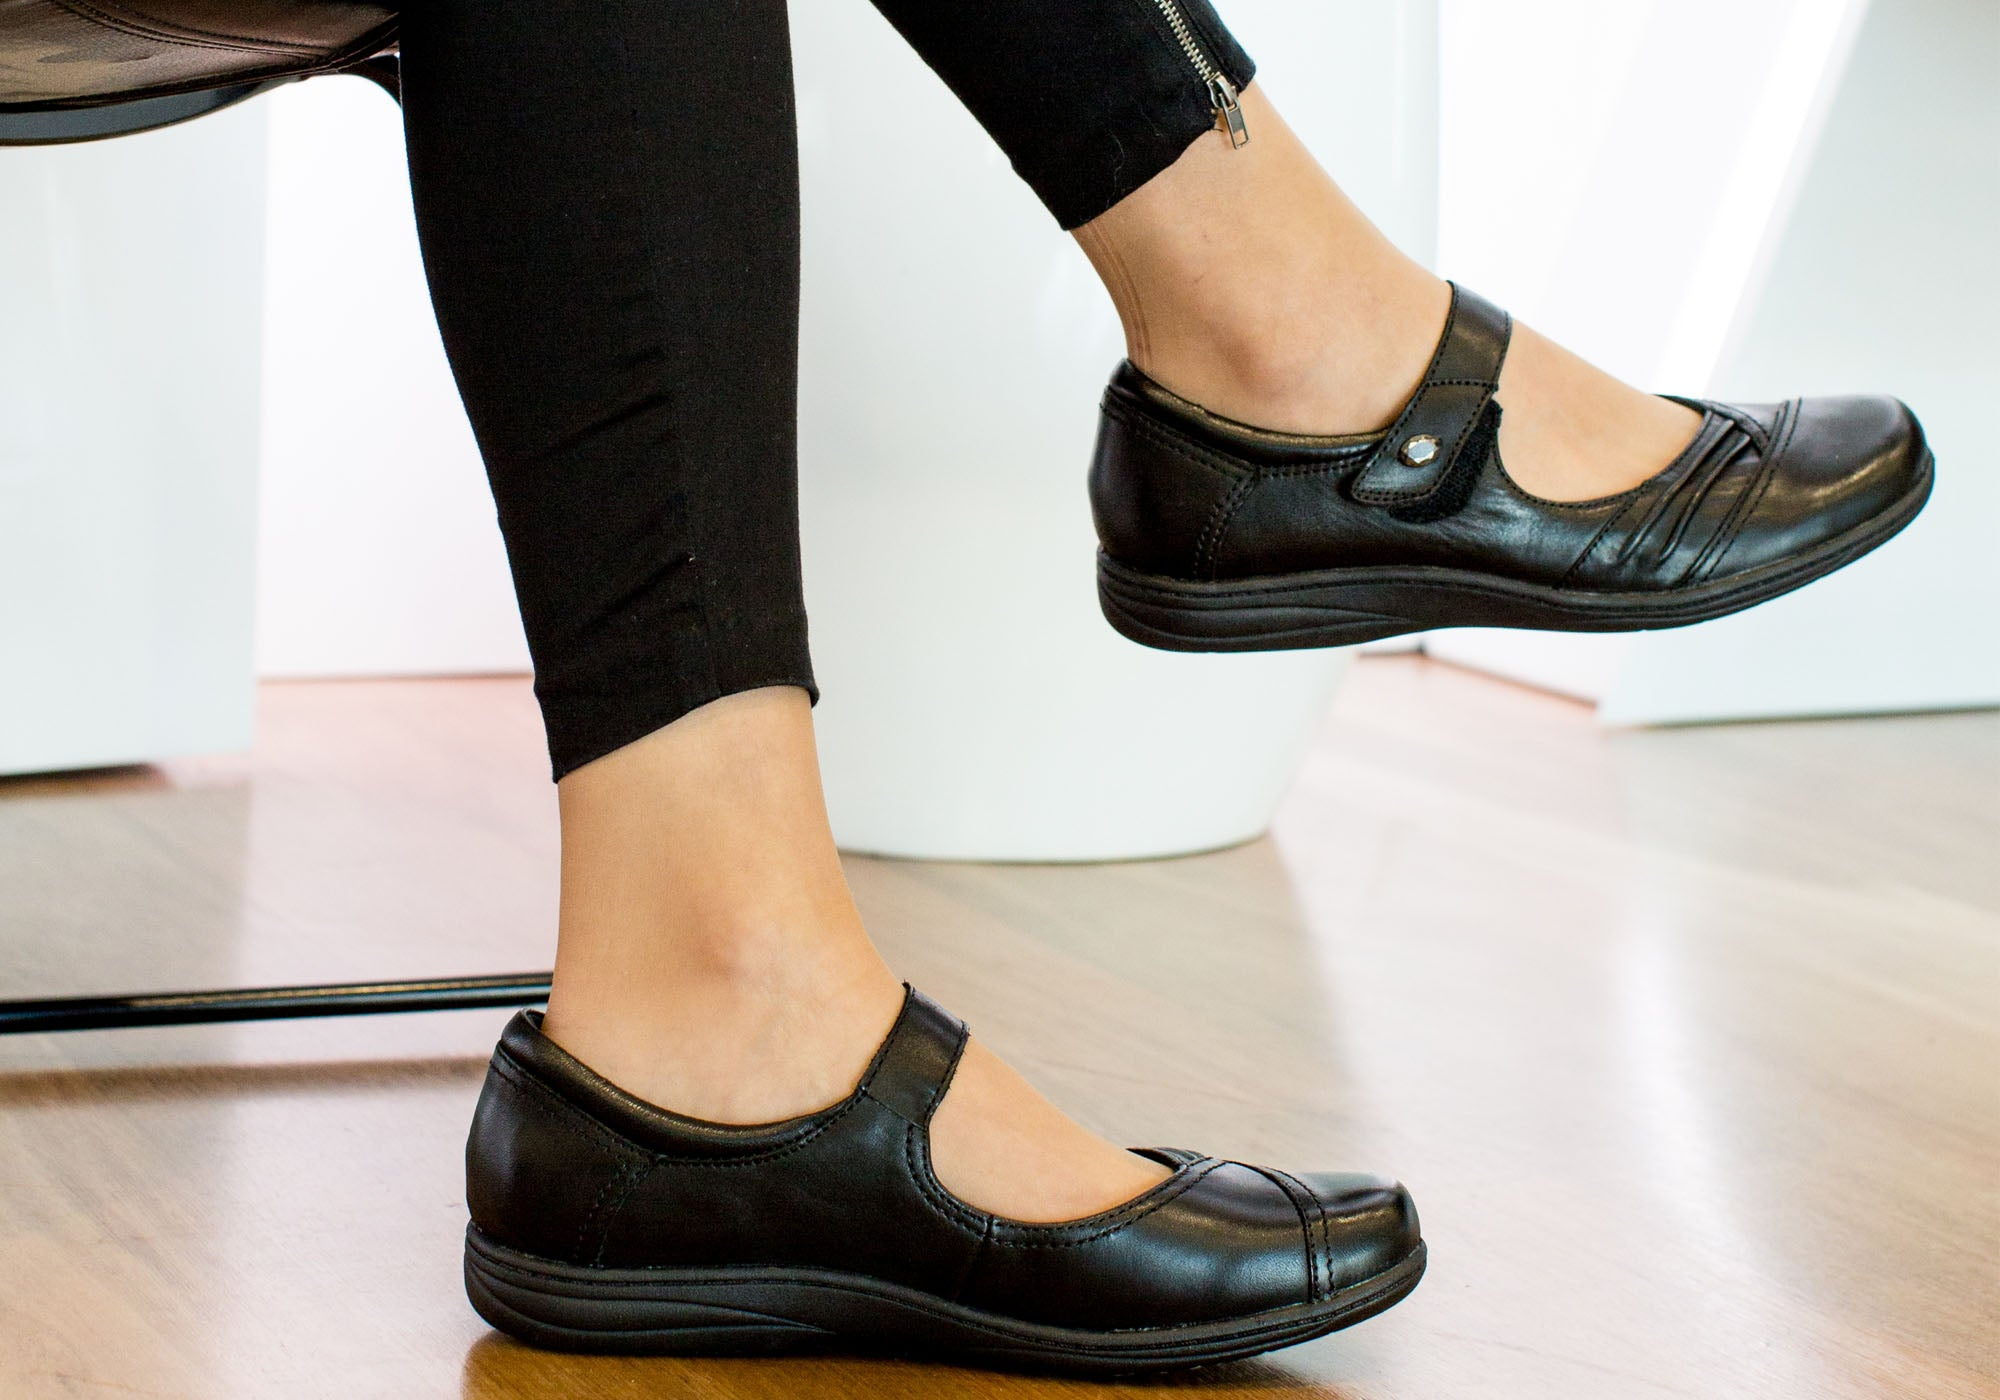 Planet Shoes Jamie Womens Mary Jane